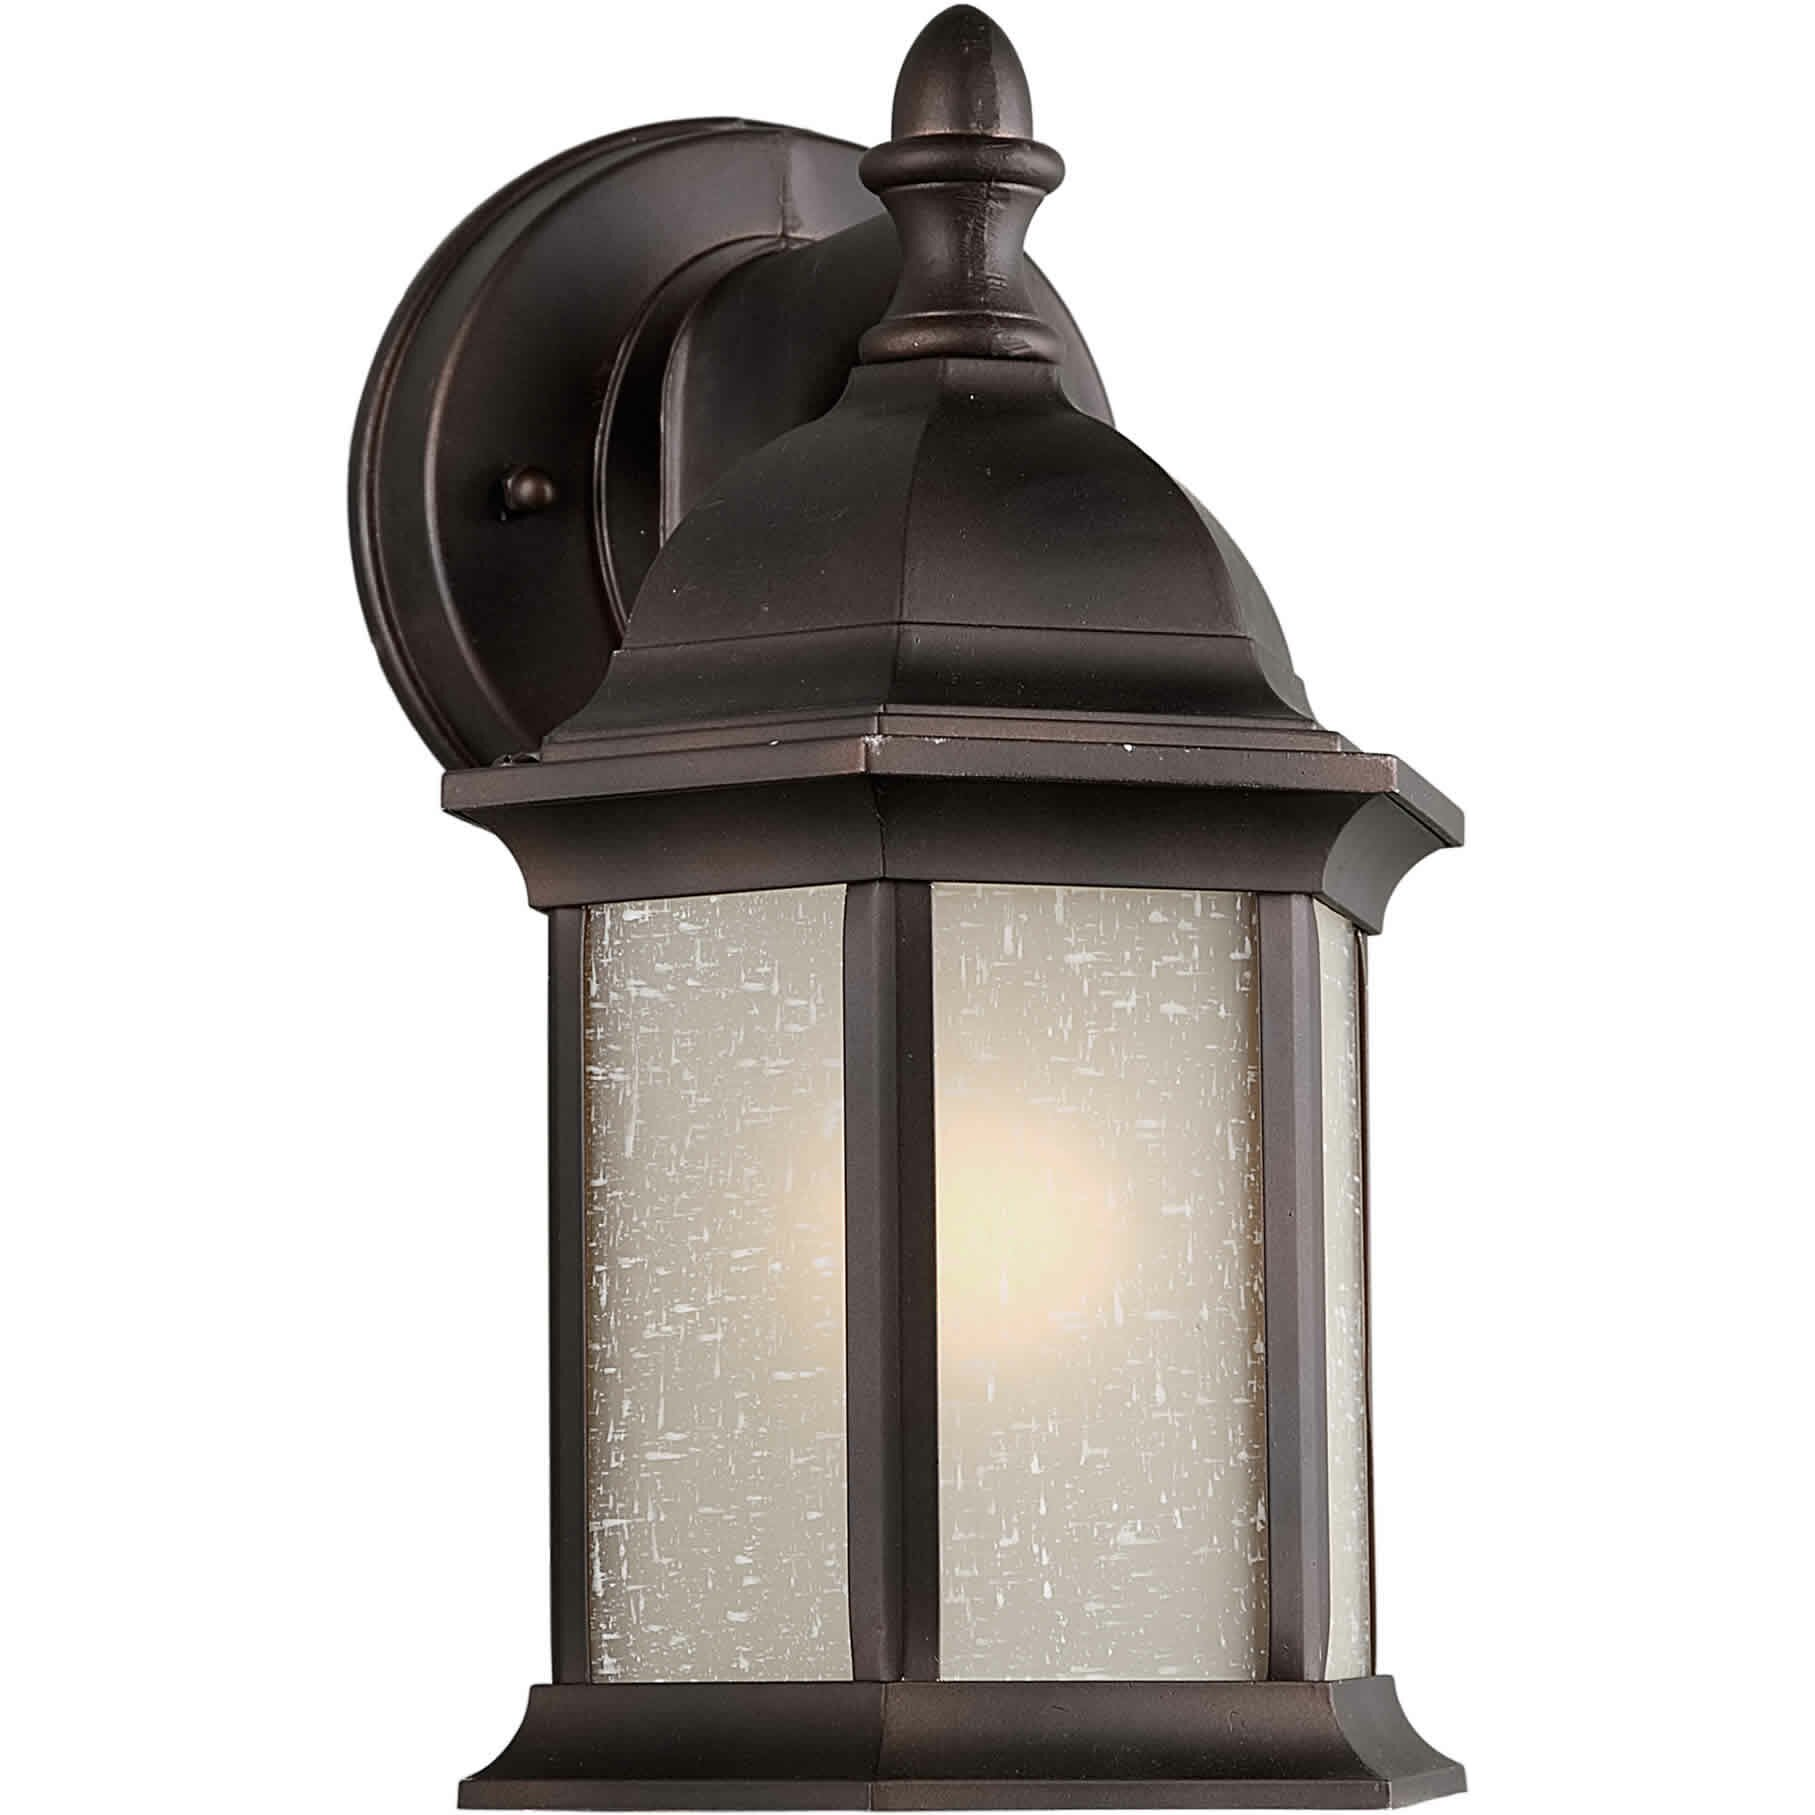 Lantern Wall Light Outdoor : Forte Lighting 1 Light Outdoor Wall Lantern & Reviews Wayfair